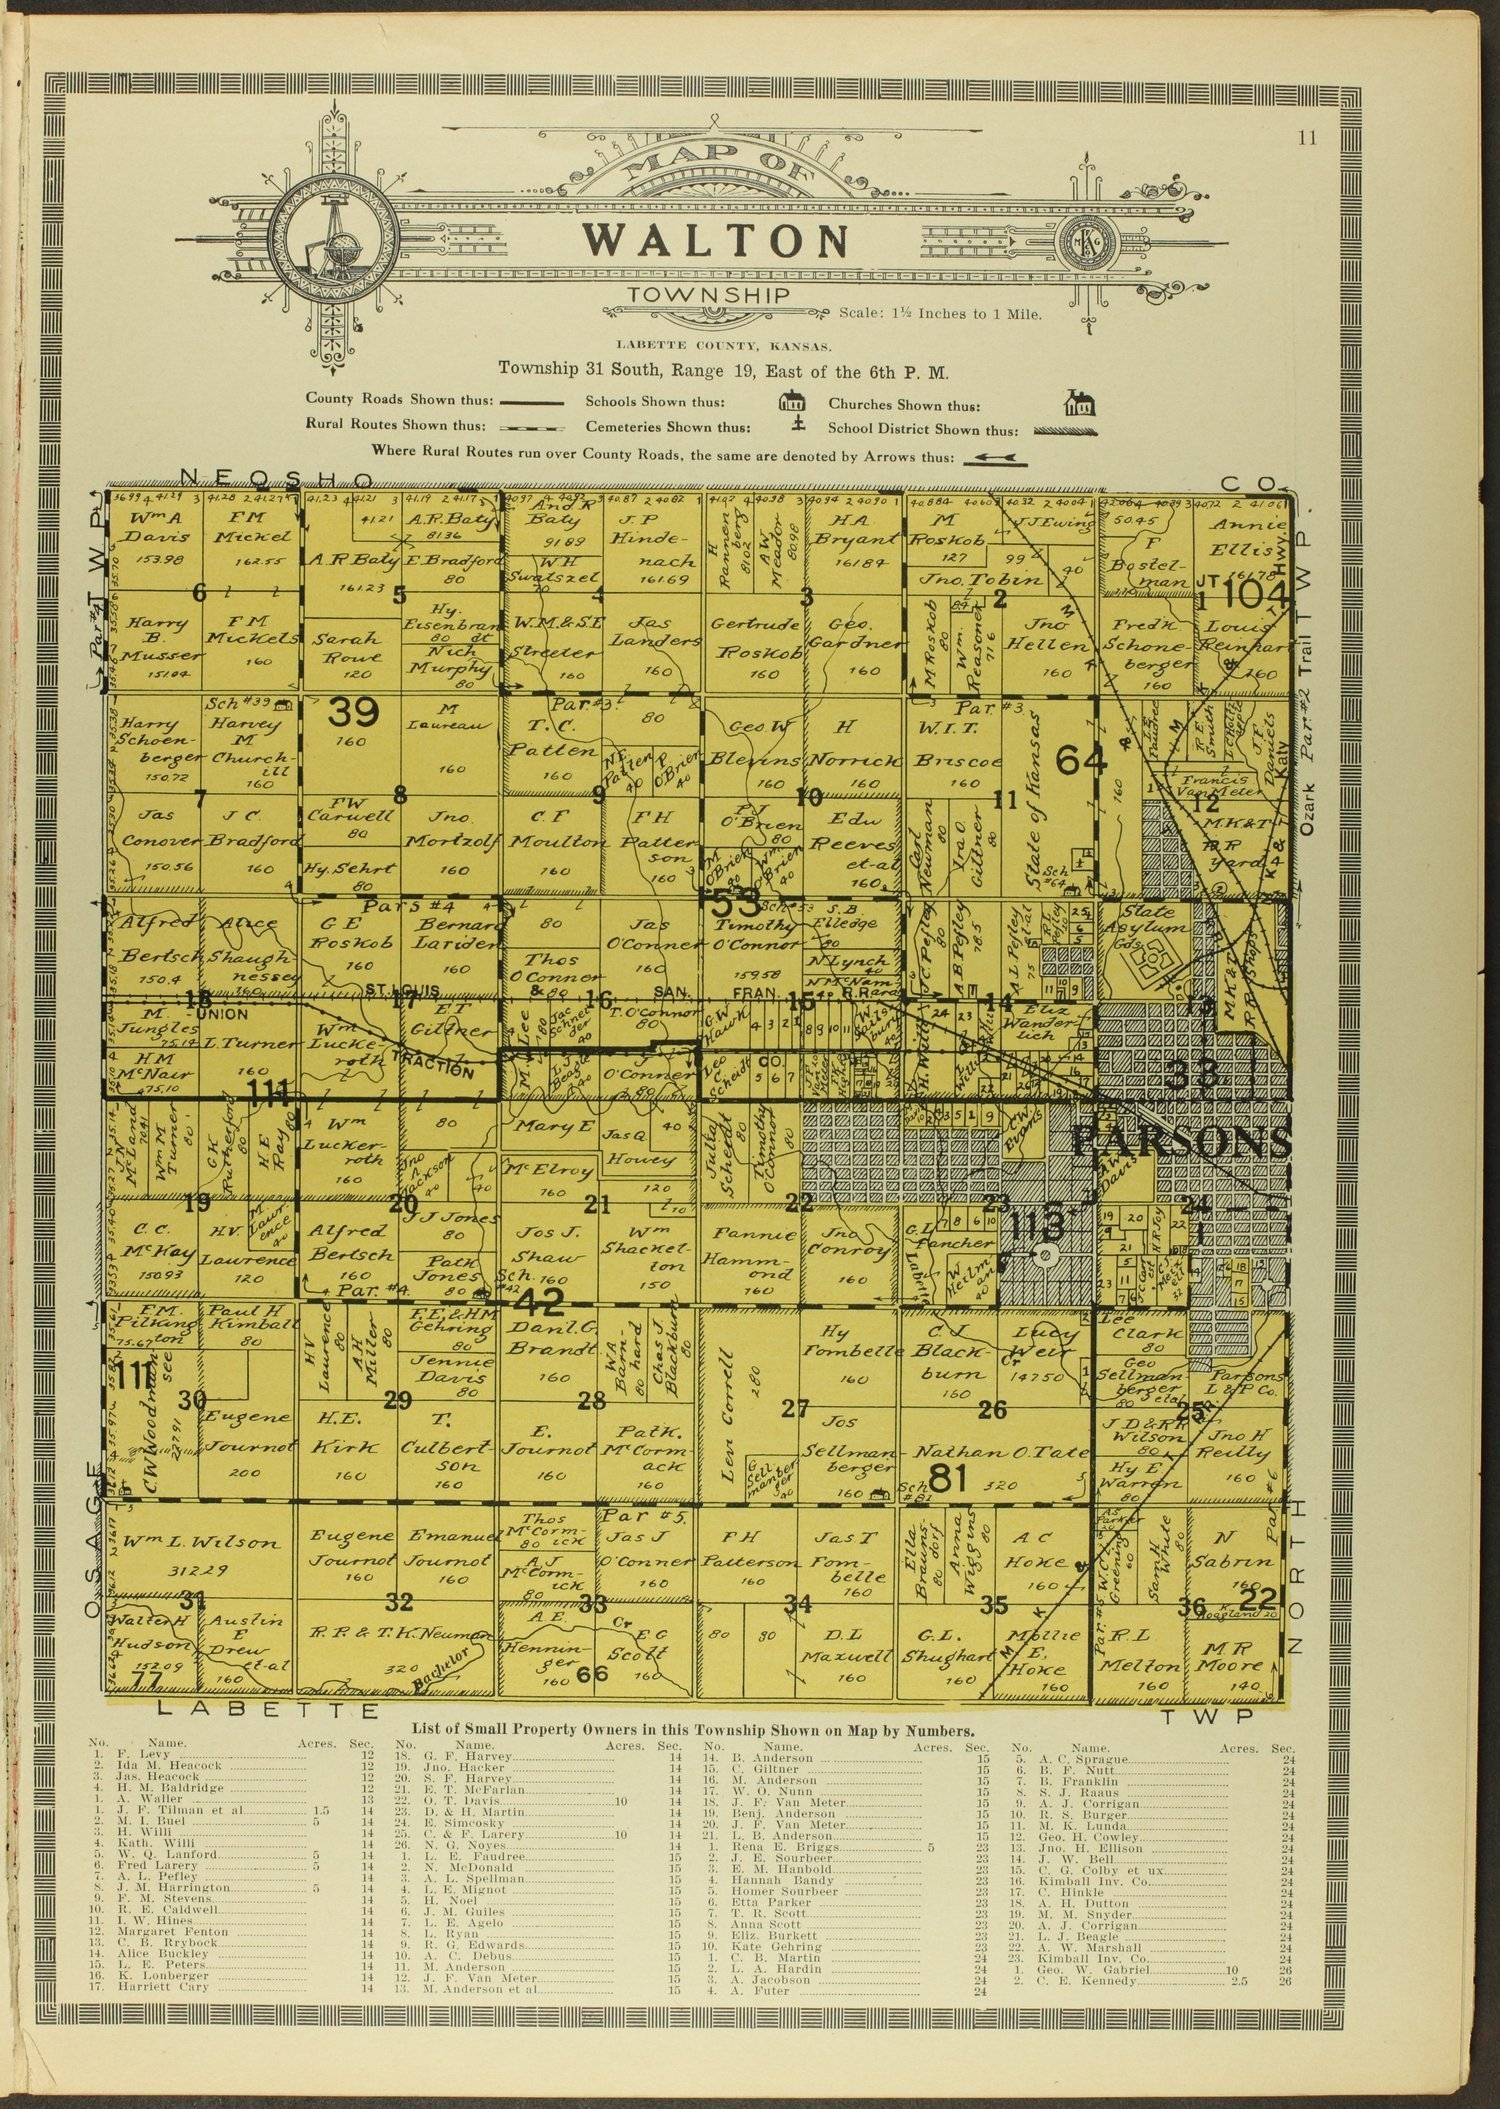 Atlas and plat book of Labette County, Kansas - 11